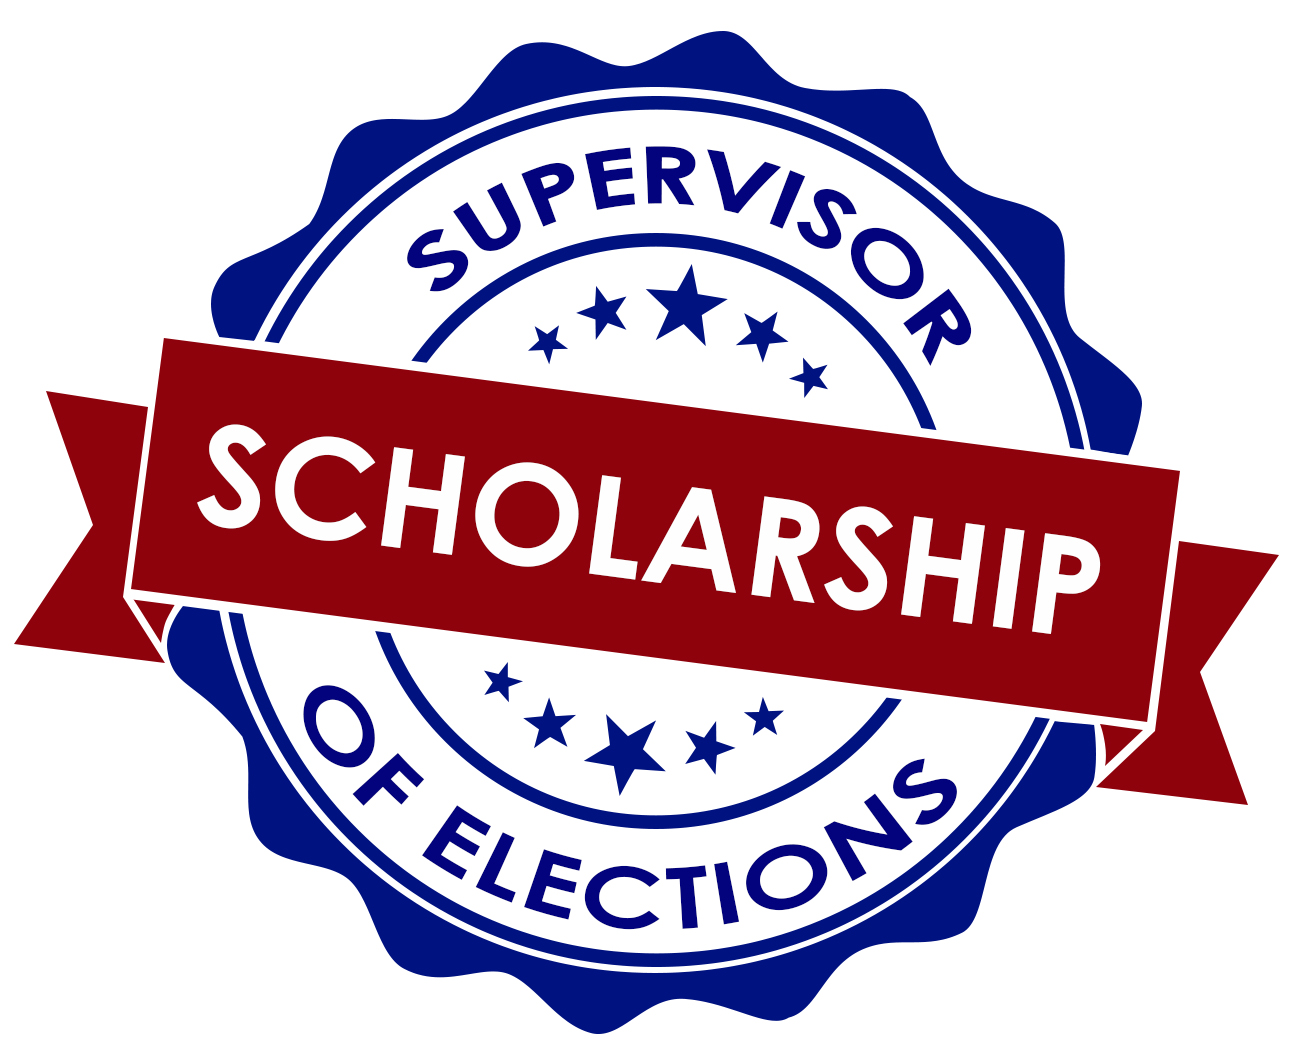 Supervisor of Elections Scholarship